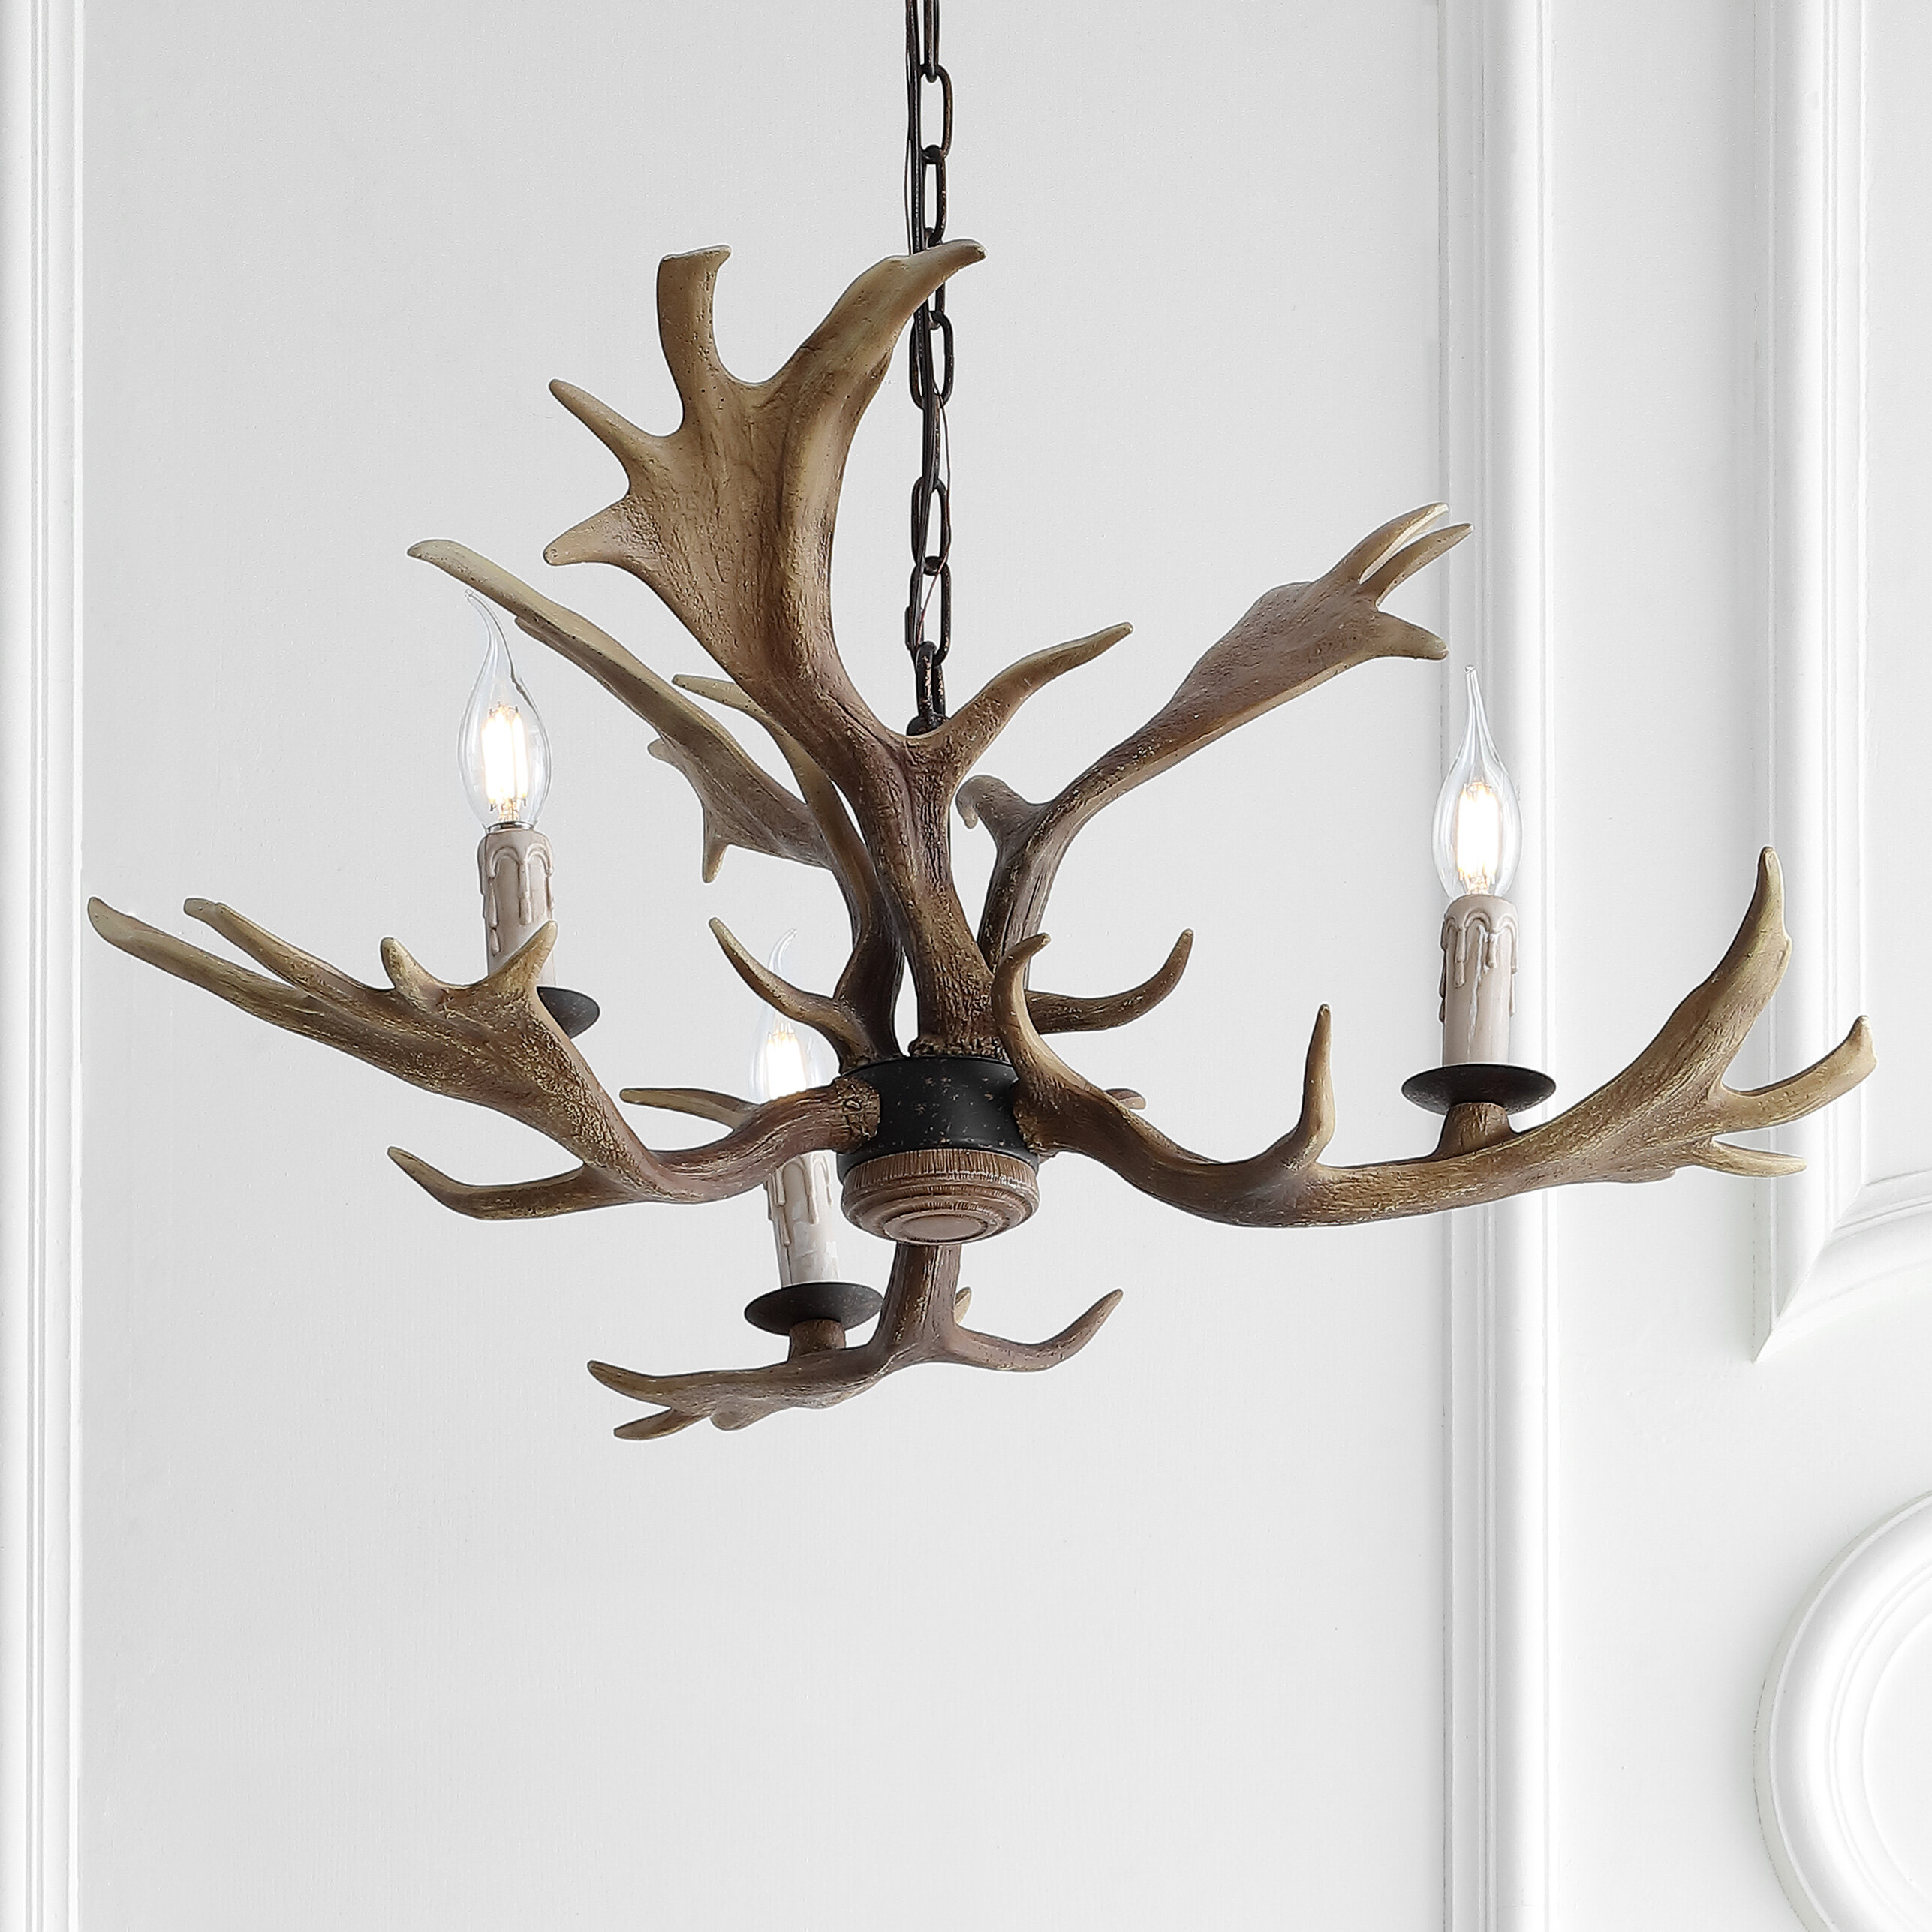 Picture of: Lamp Repair Refurbishing 6 Resin Faux Antler Style Candelabra Candle Cover For Rustic Chandelier Fixture Medalex Rs